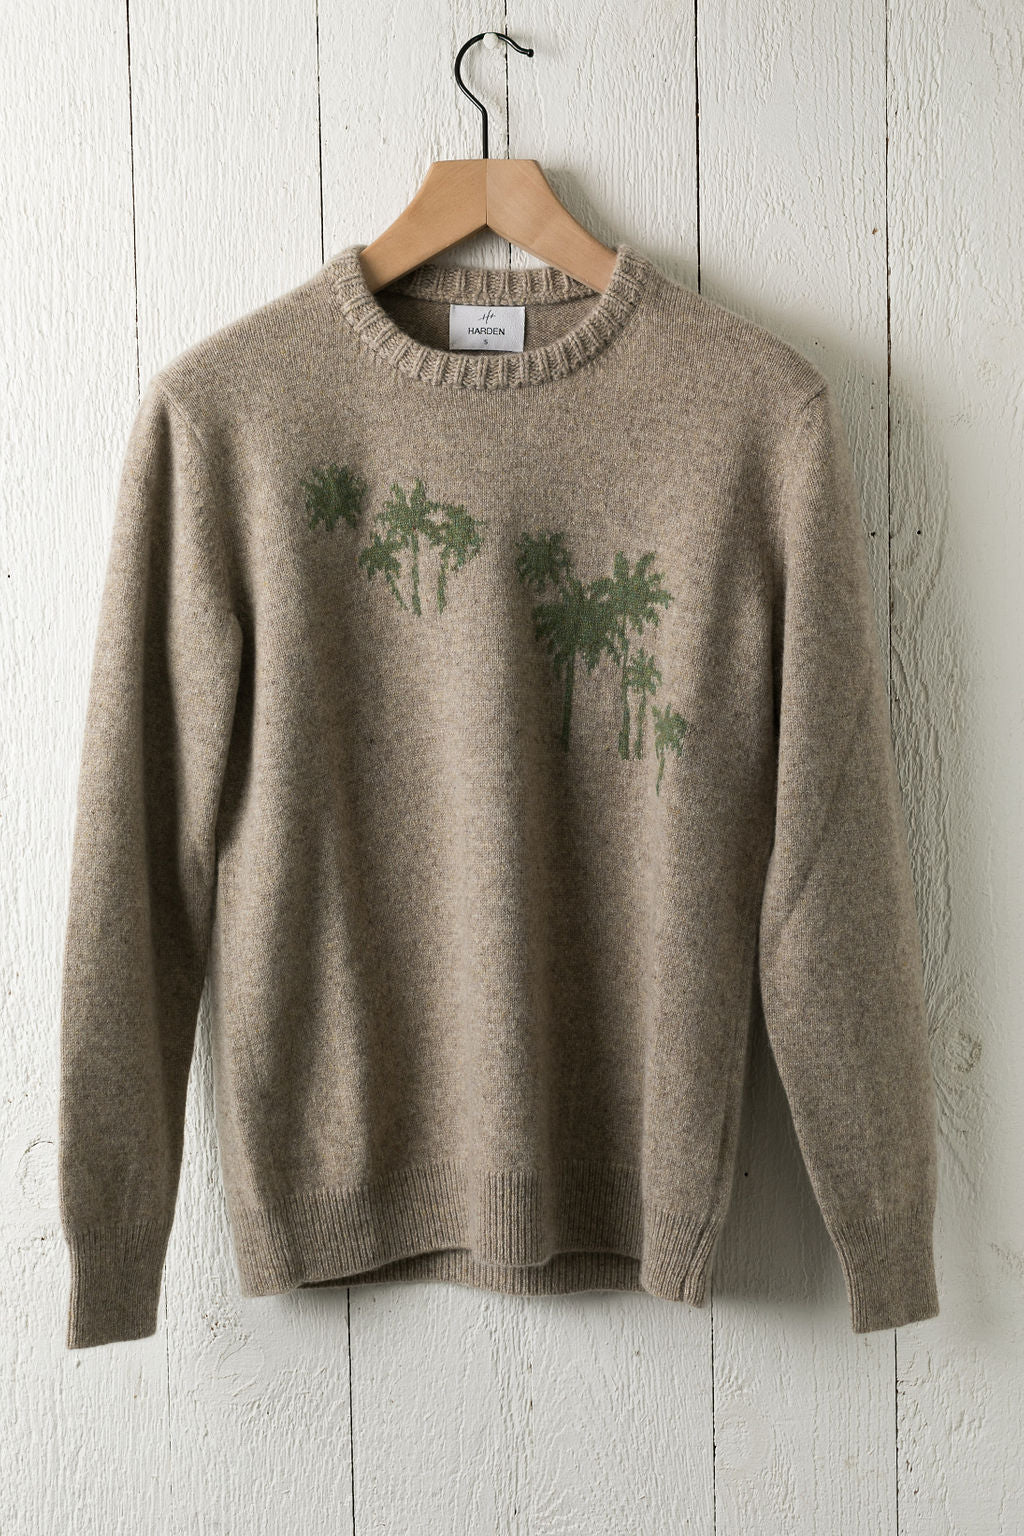 Harden-Palm-Cashmere-Sweater-Oatmeal/Green